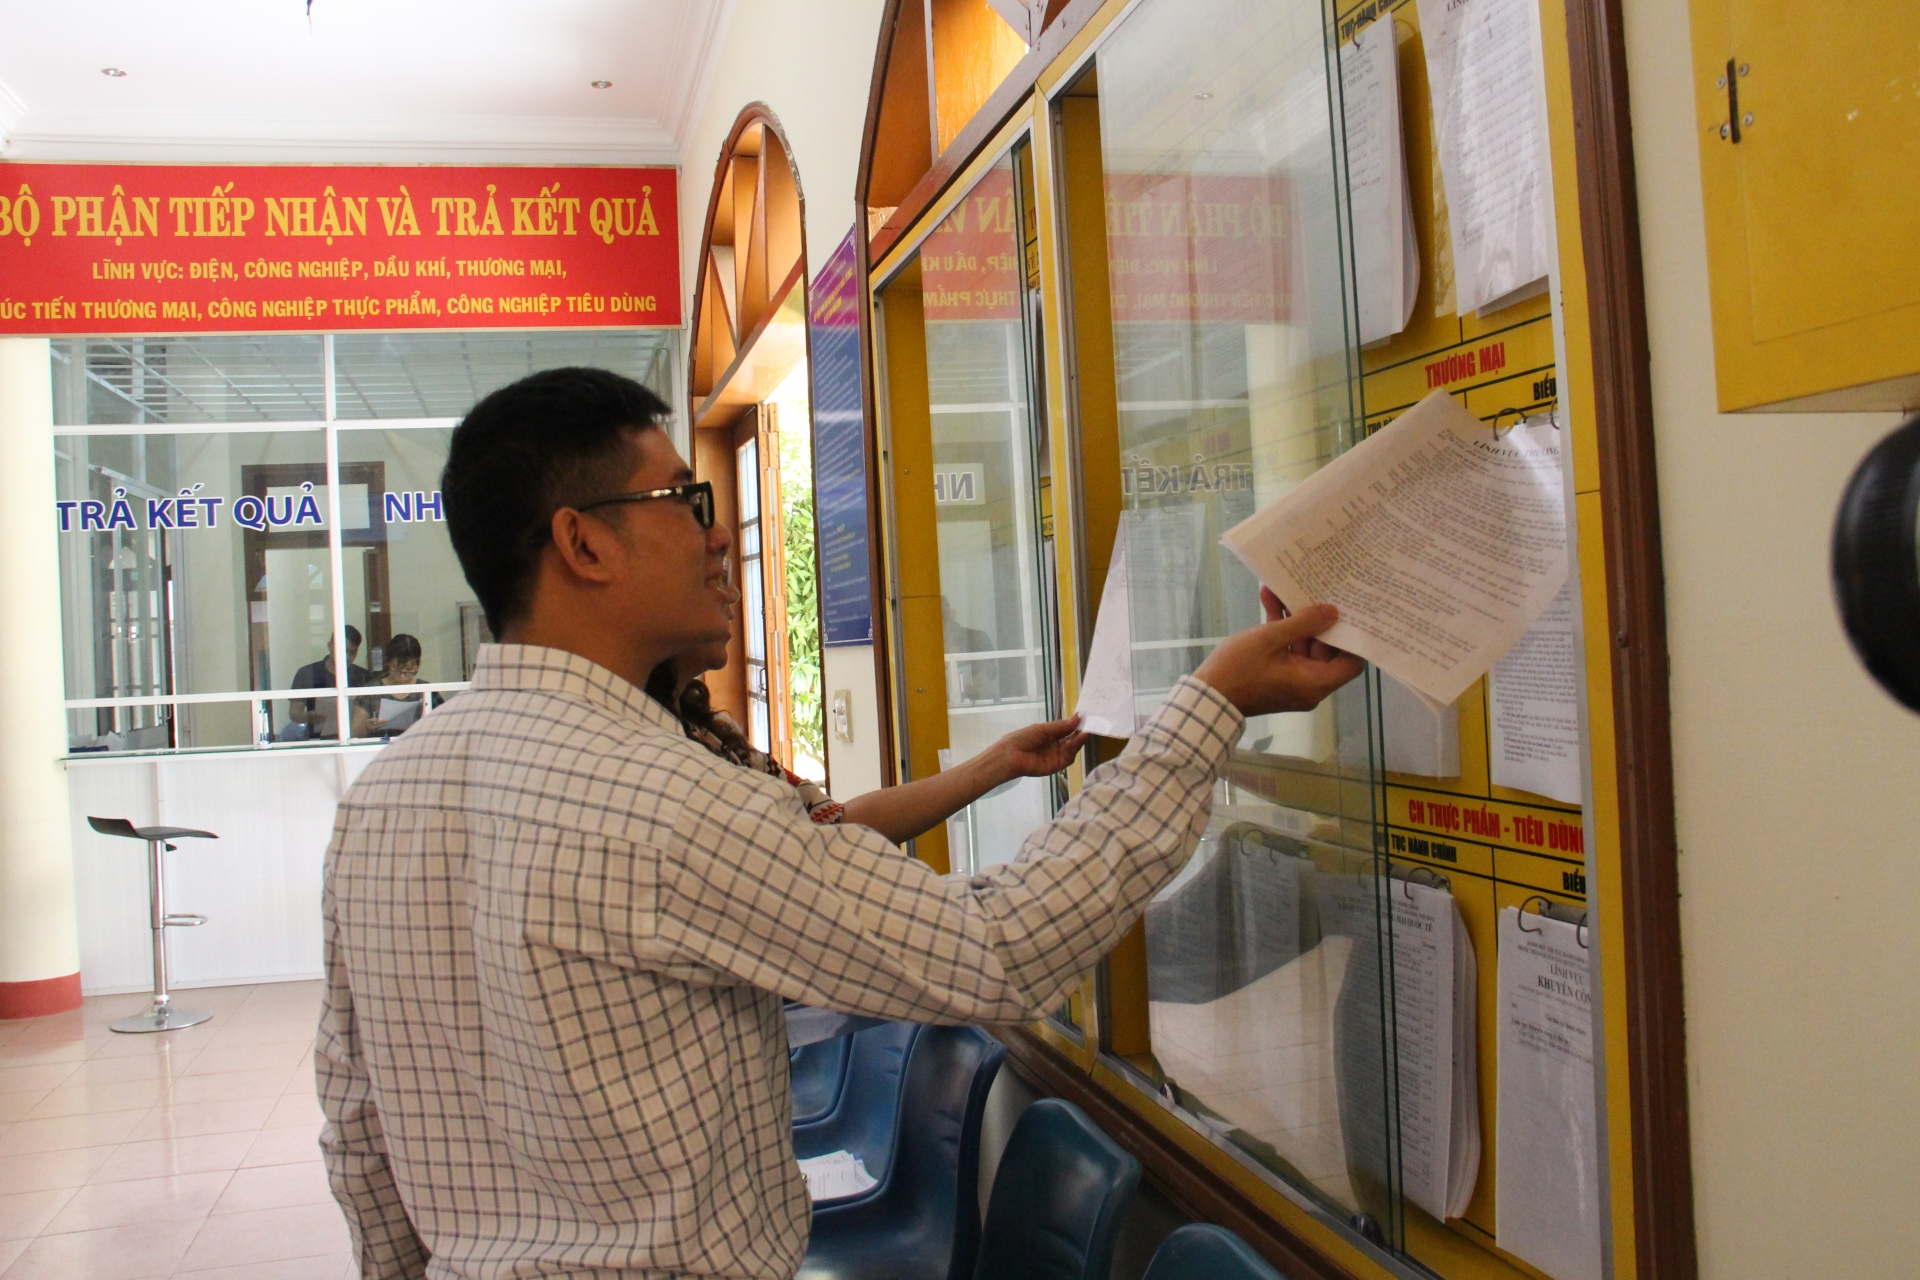 hanoi residents business not entirely satisfied with public services